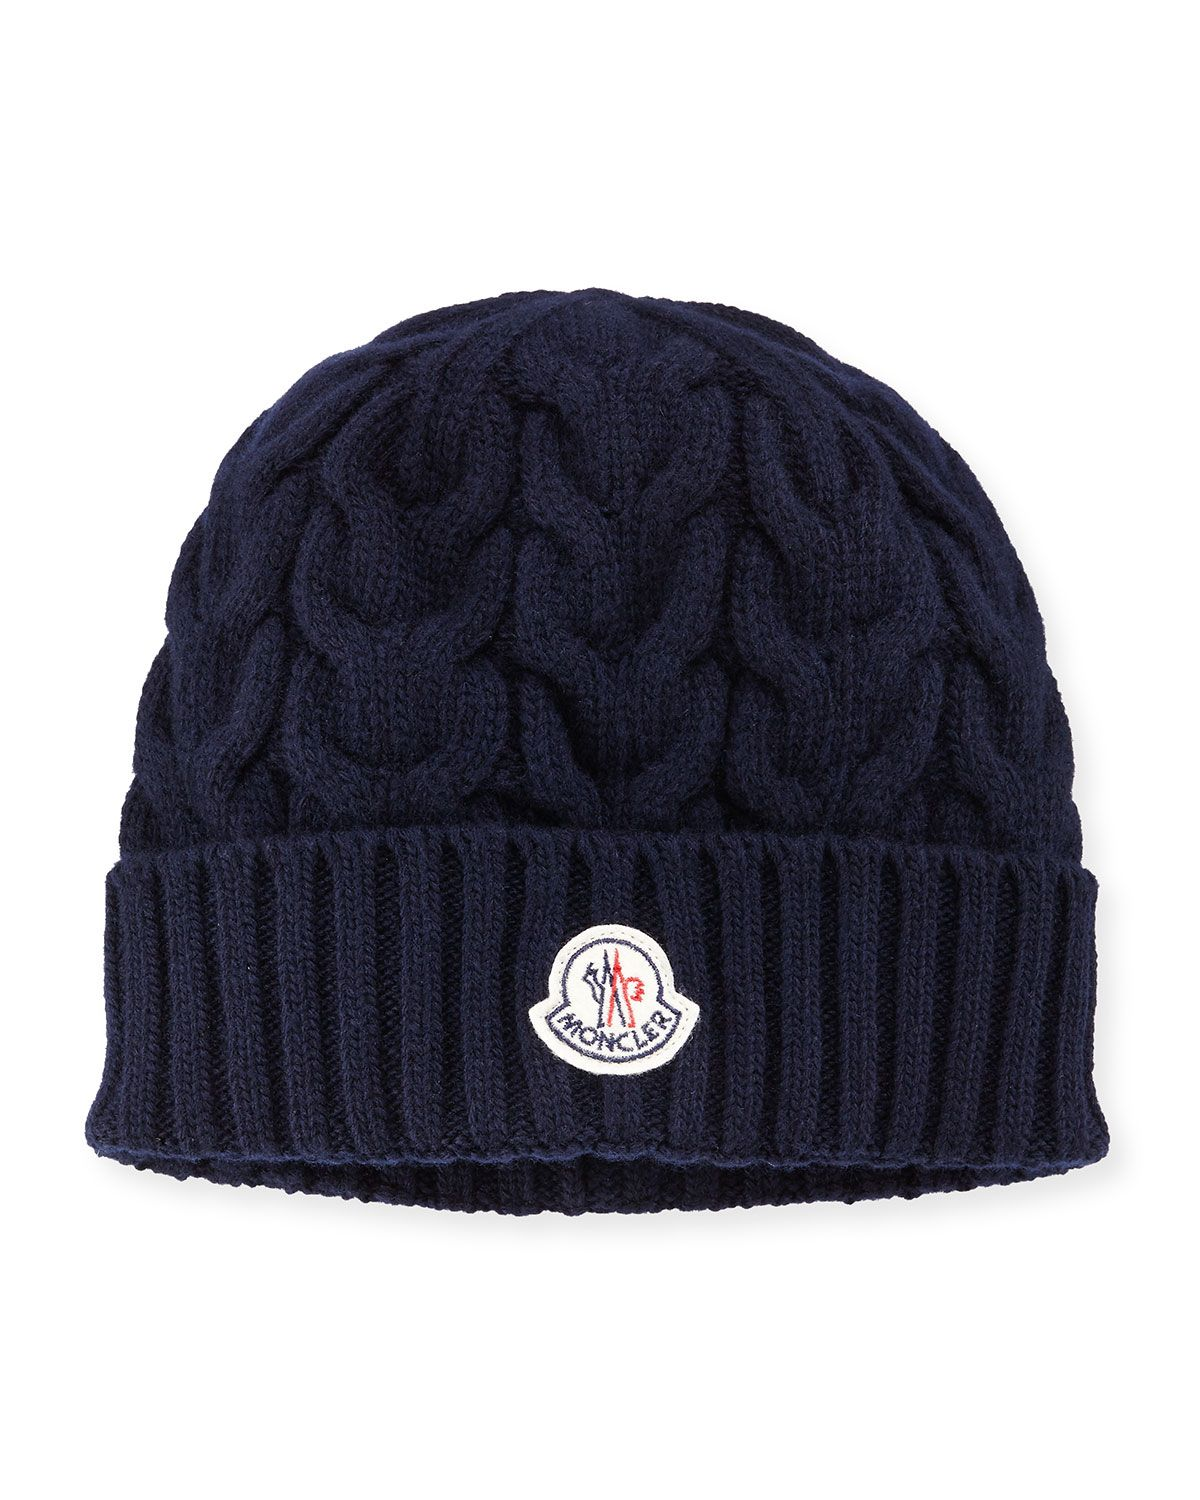 Cashmere Cable-Knit Beanie Hat 4f281304af5